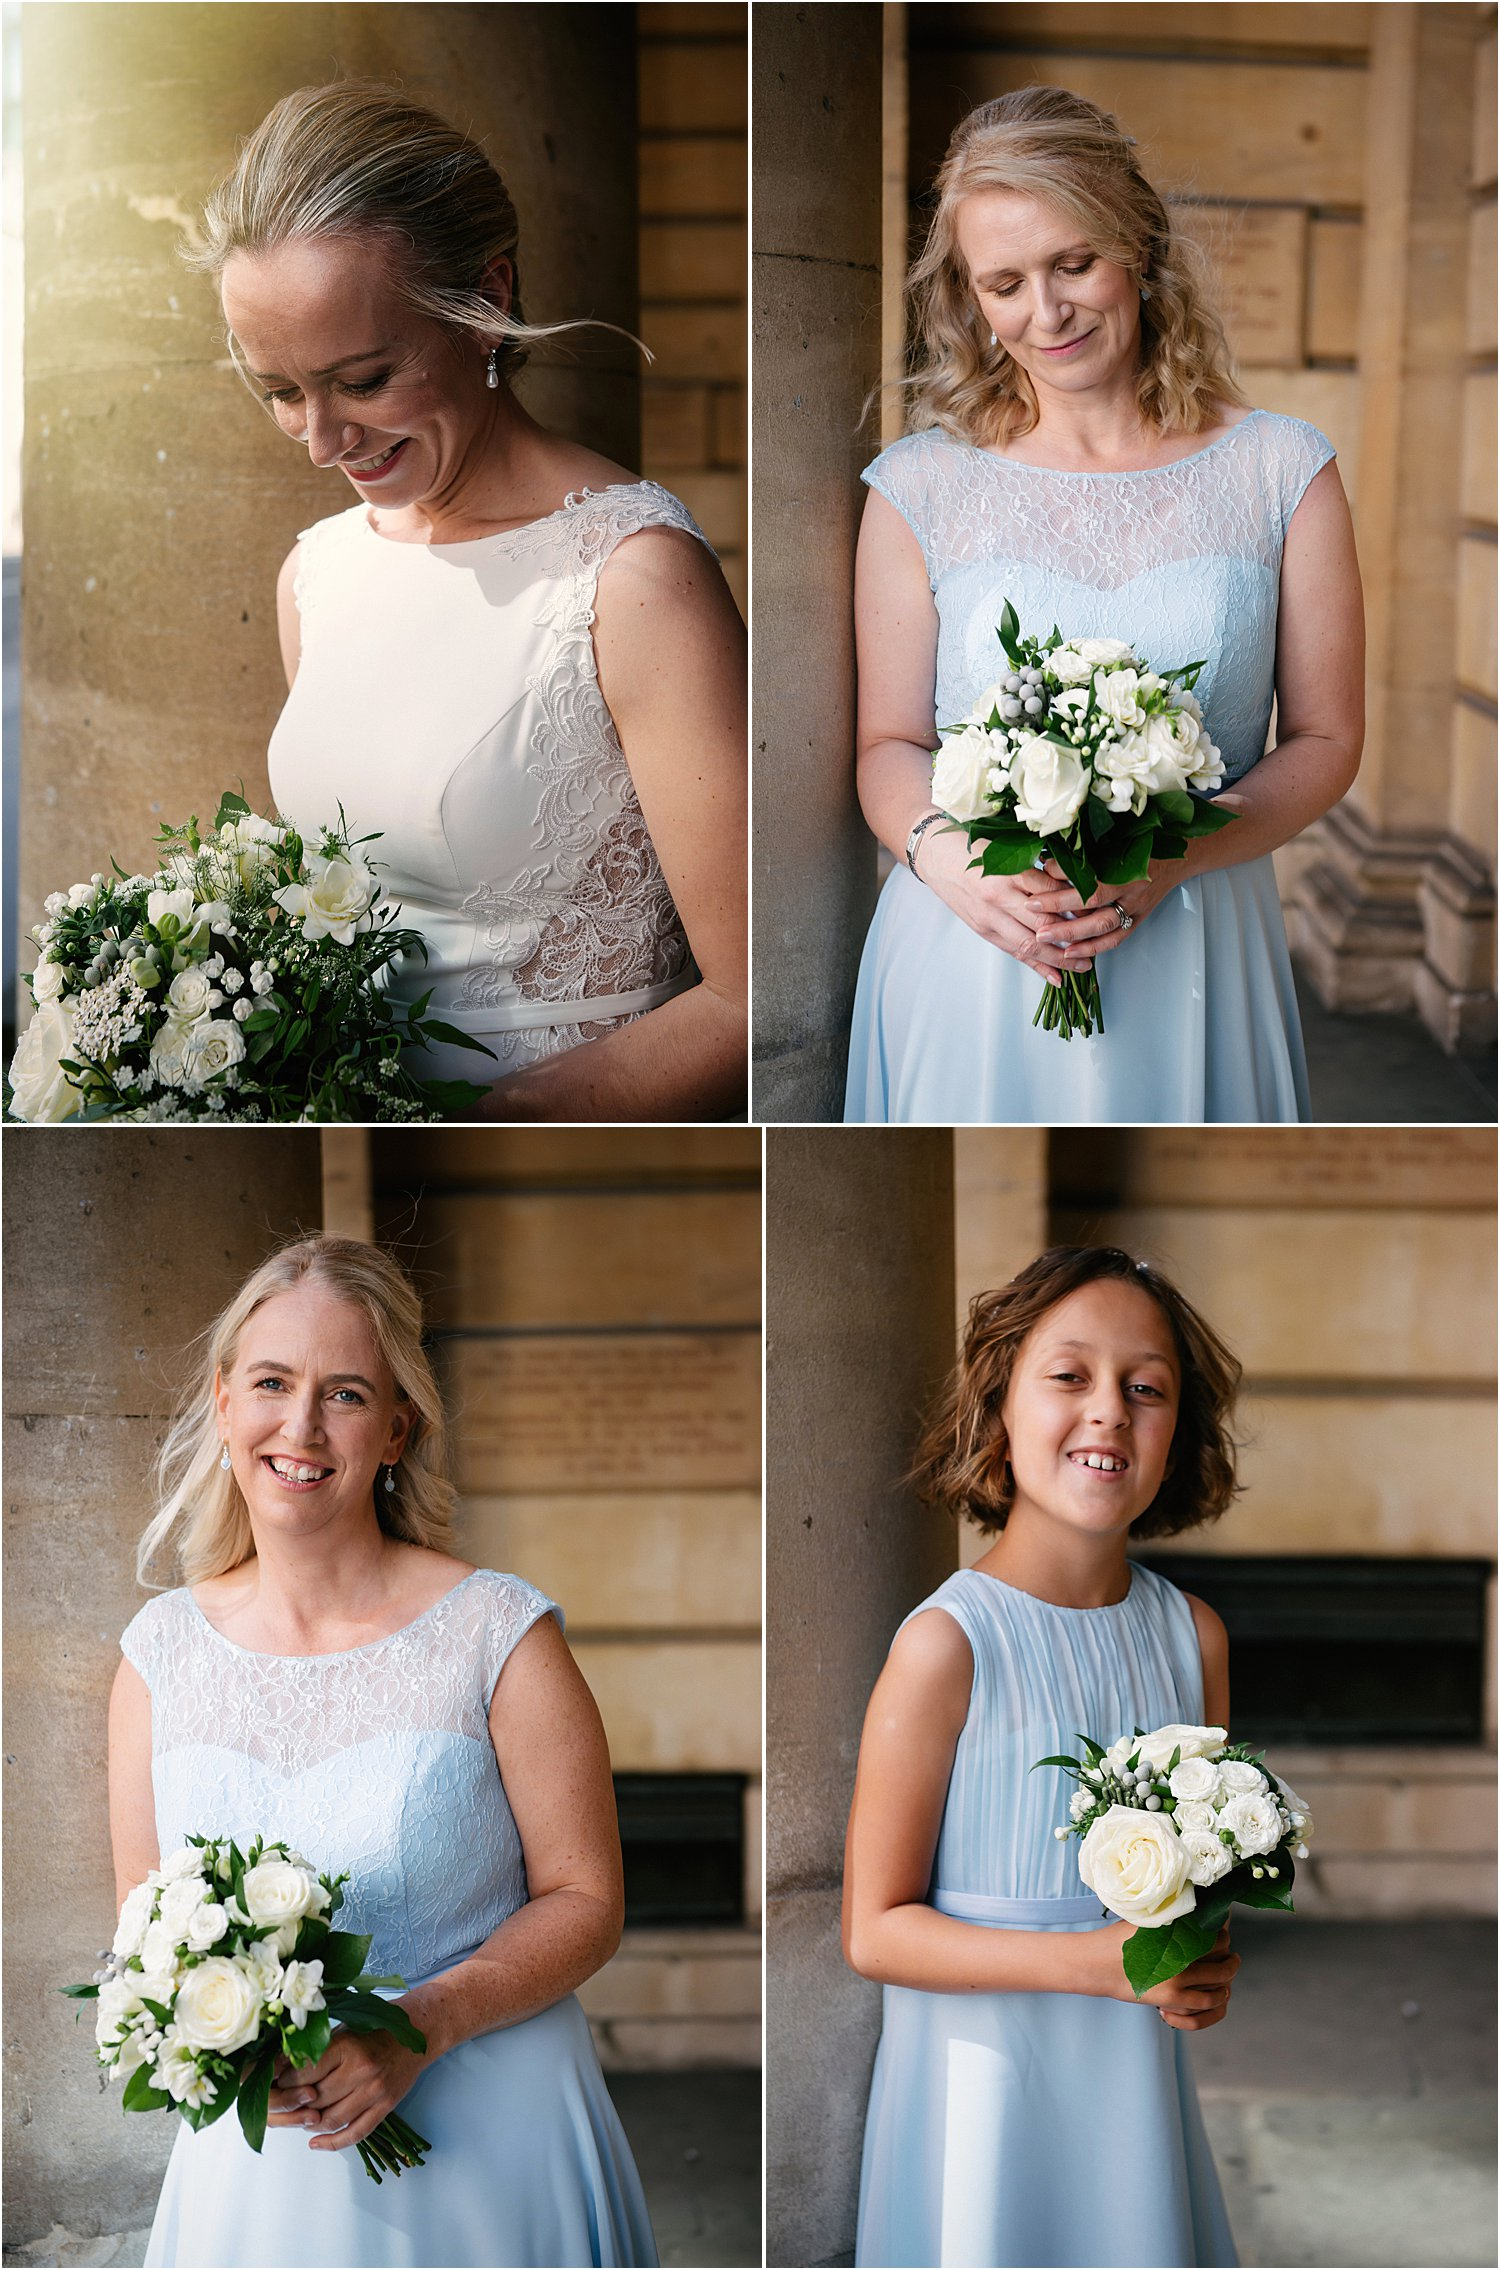 cornflower-blue-and-white-london-city-temple-wedding-lily-sawyer-photography